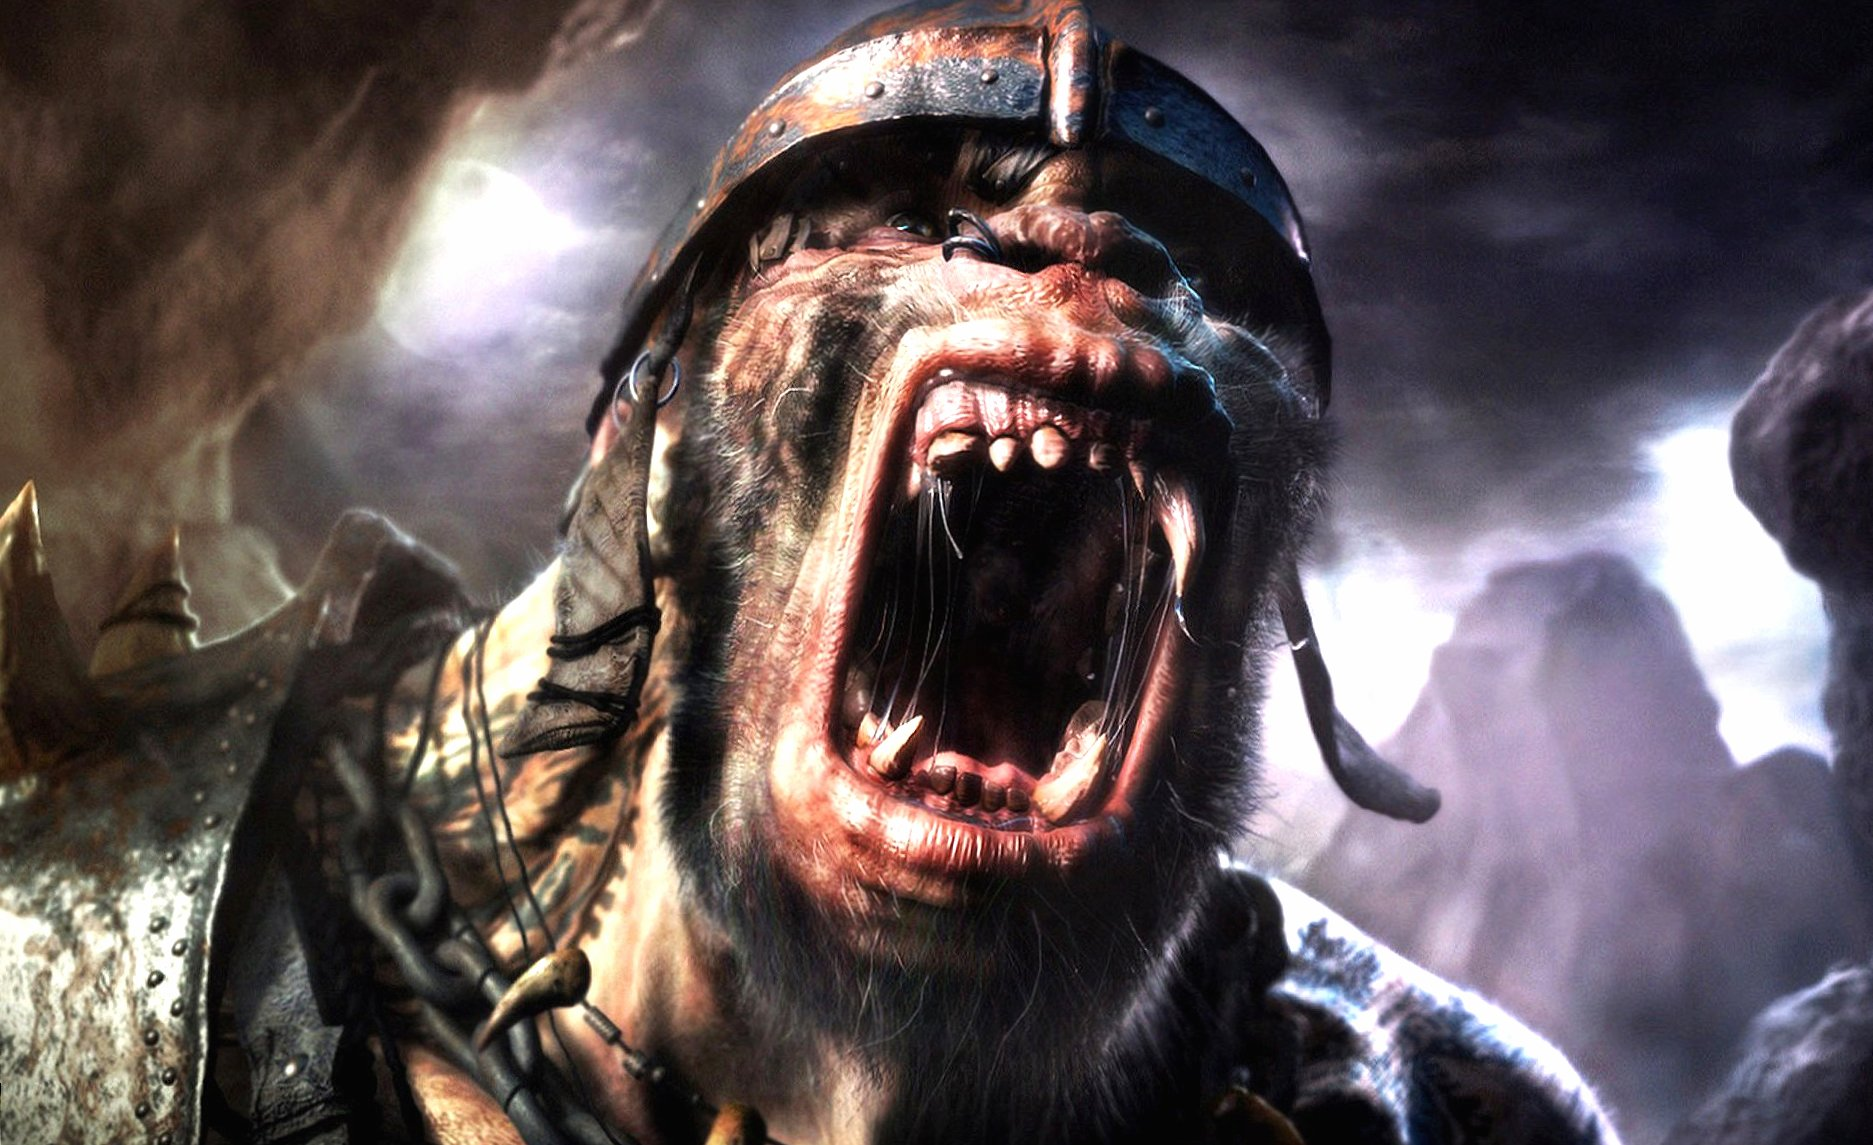 Creature war cry wallpapers HD quality